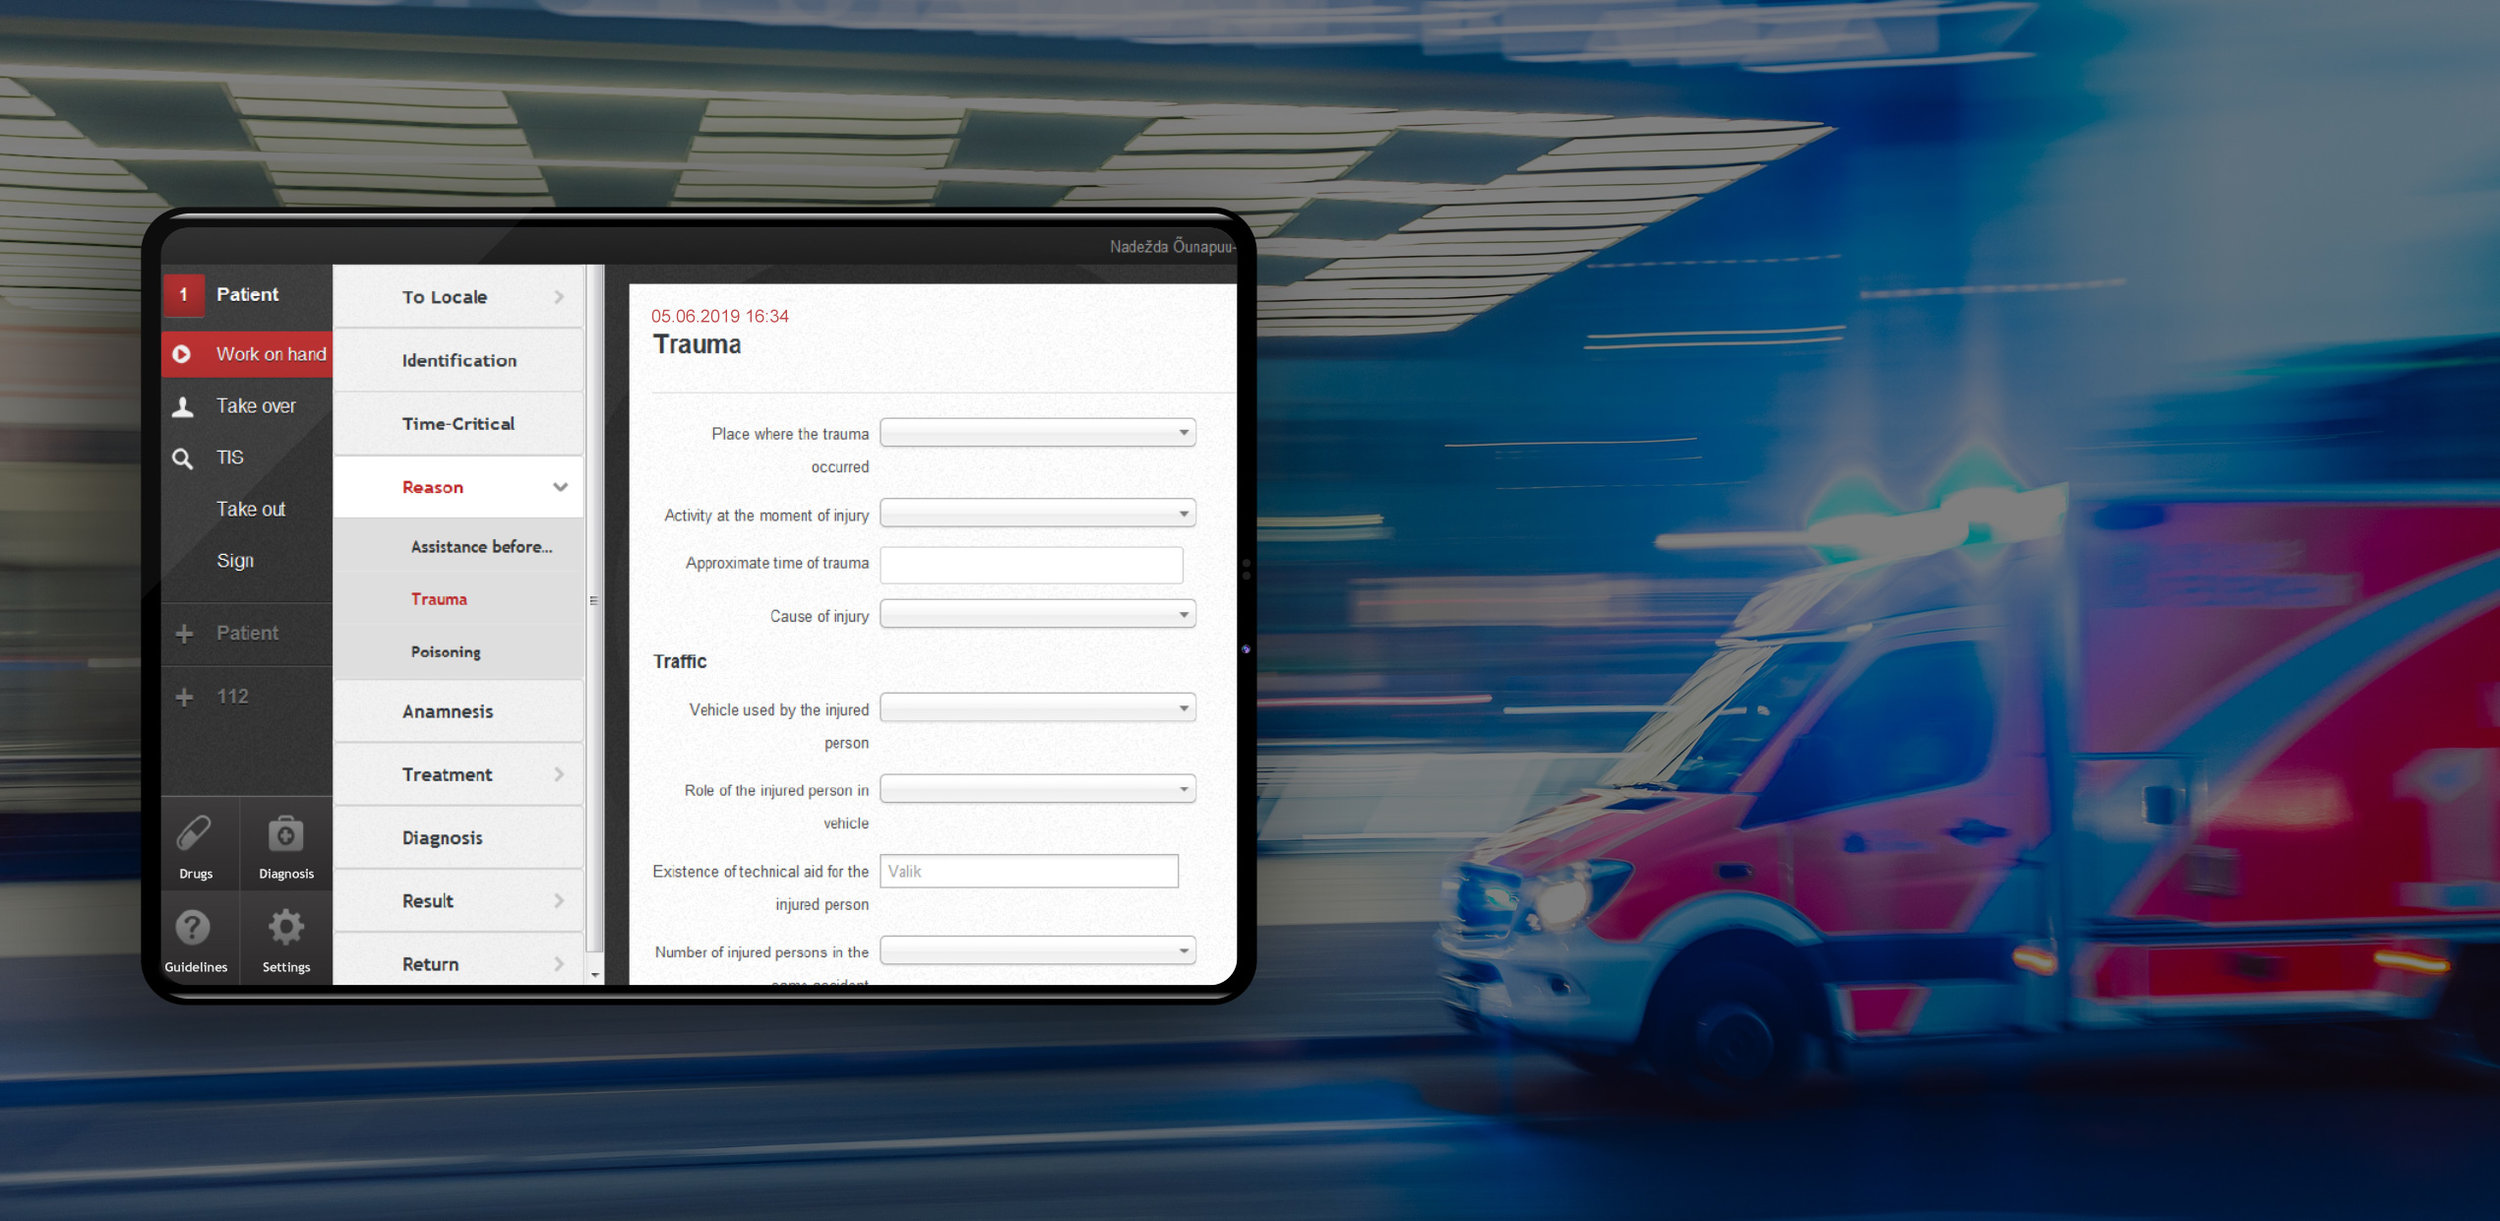 eAMBULANCE - Industry62 has made consistent work on making eHealth solutions in Estonia. eAmbulance is a service that can save lives in a time-critical situation. eAmbulance allows emergency personnel to access patients' medical records and makes the emergency reporting more efficient.